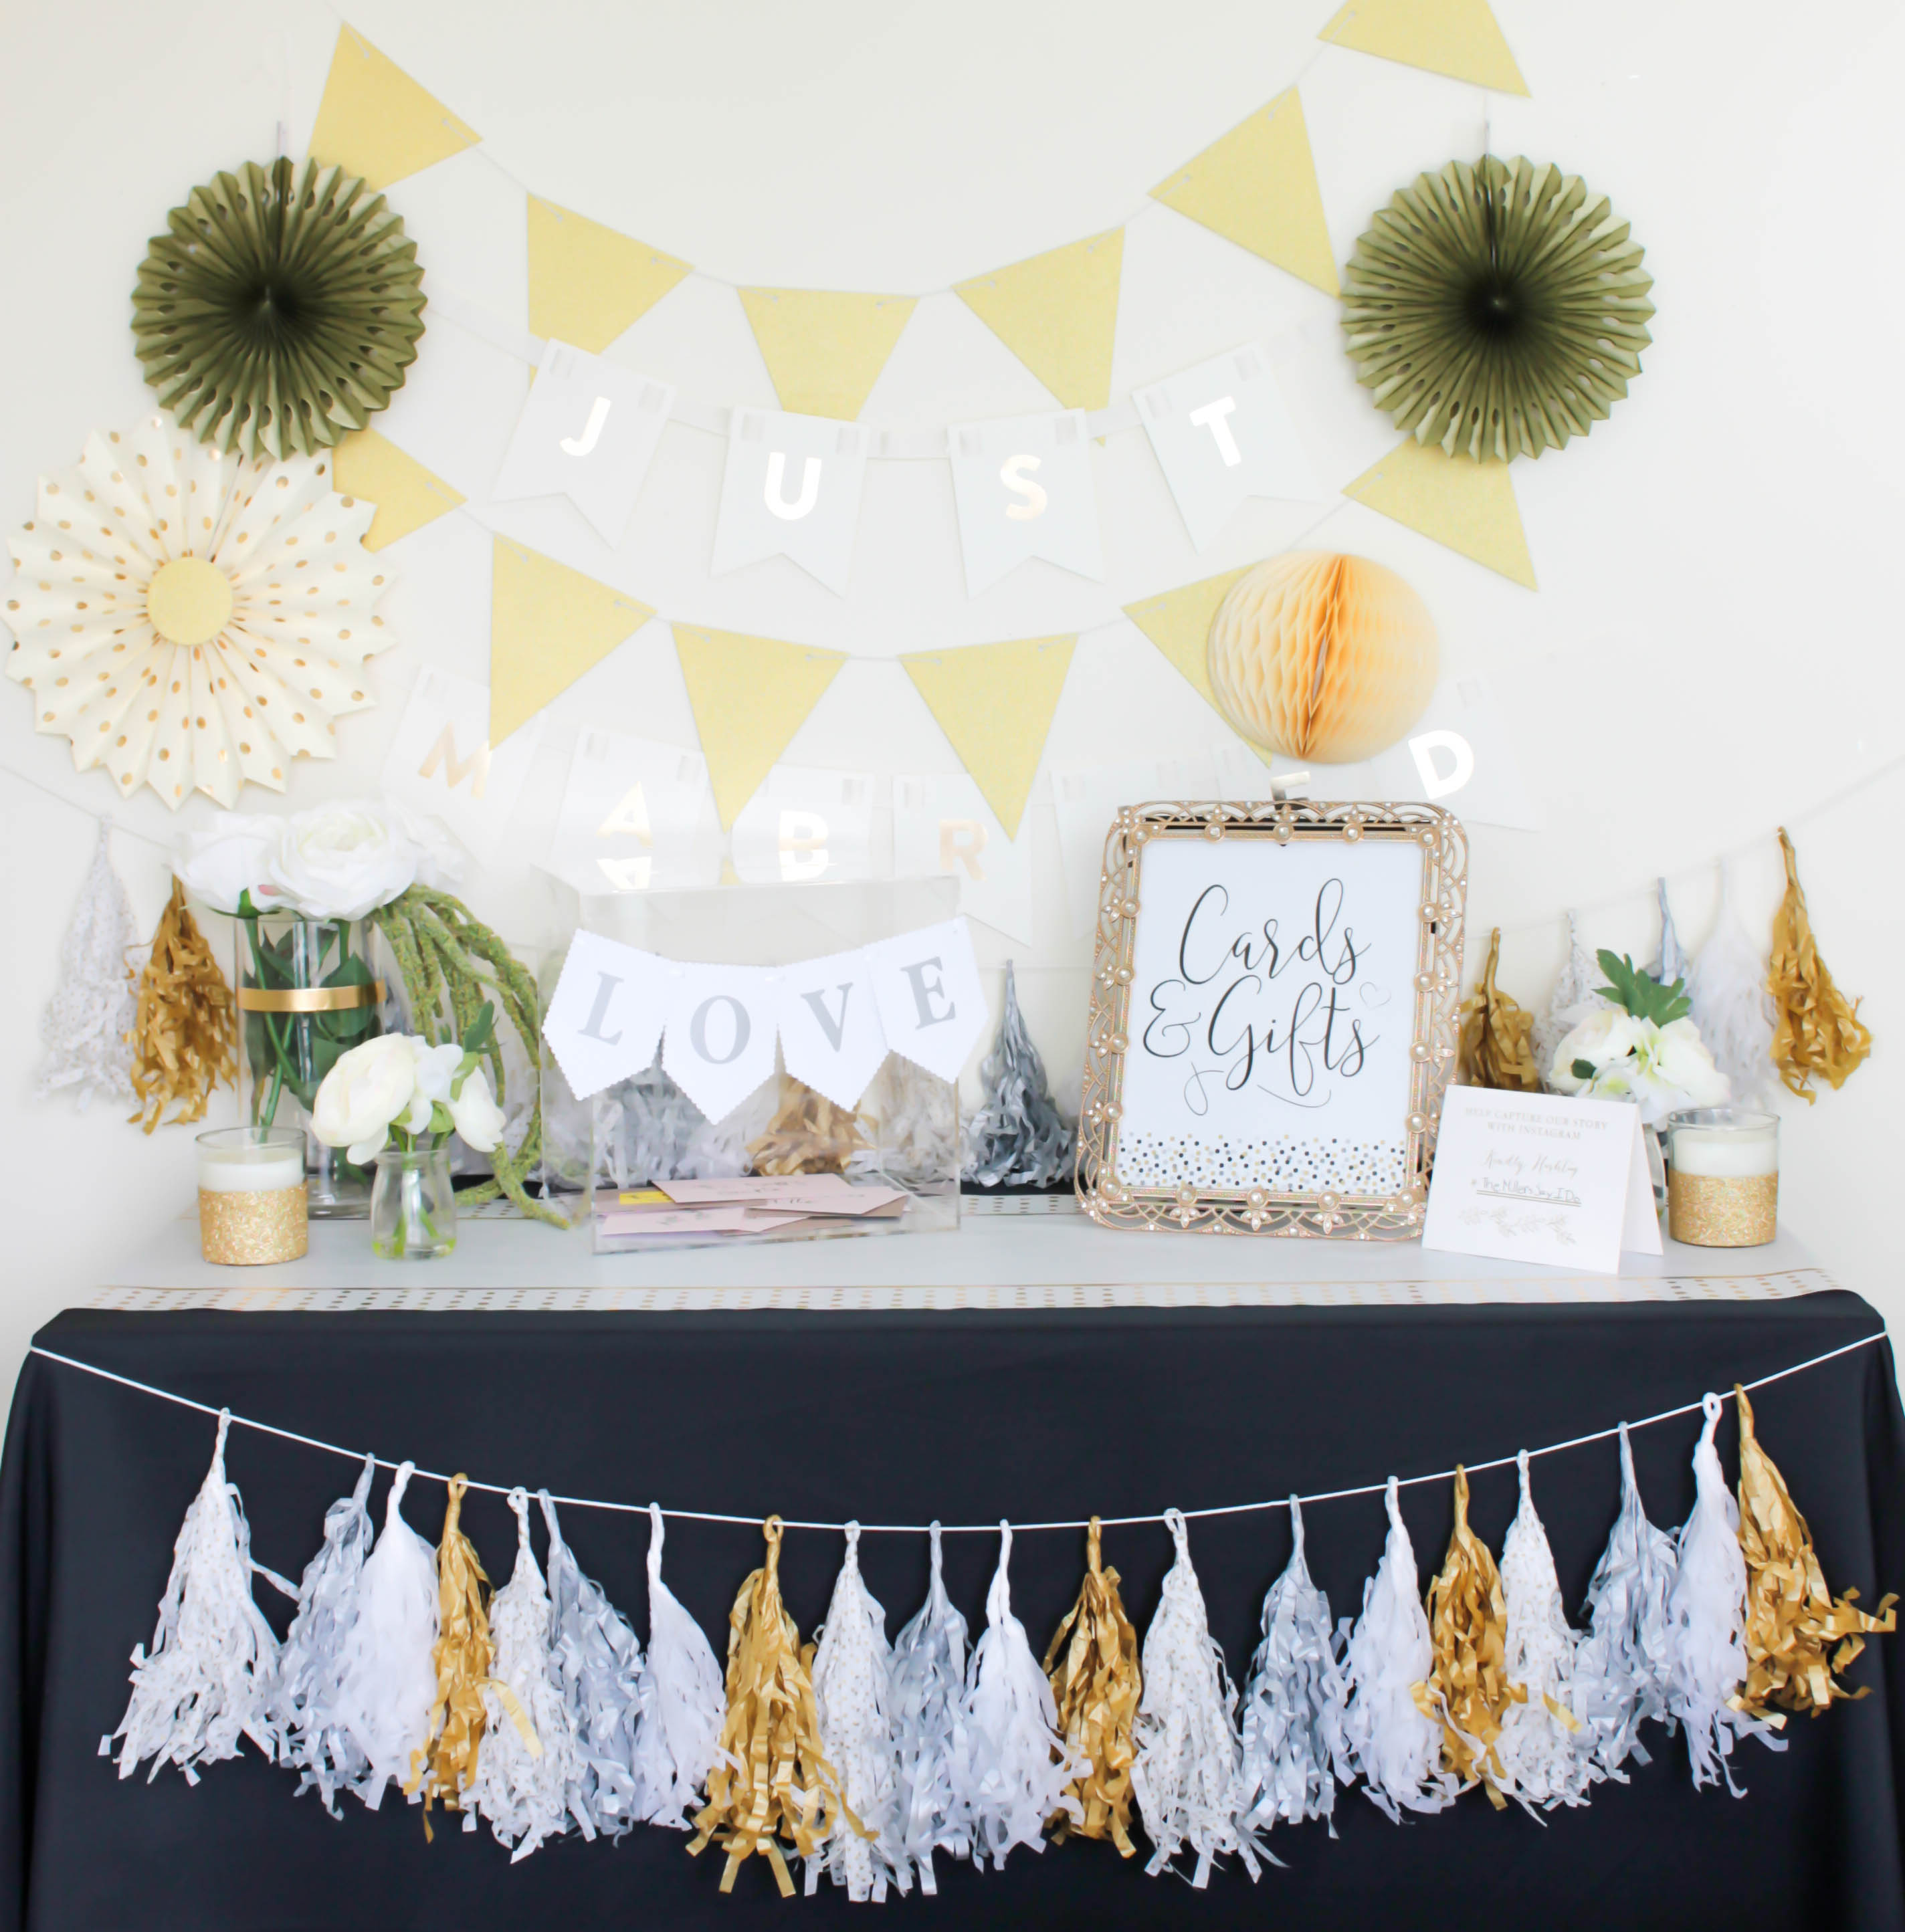 How to Make a Card and Gift Table for Your Wedding with Save The Date from JOANN